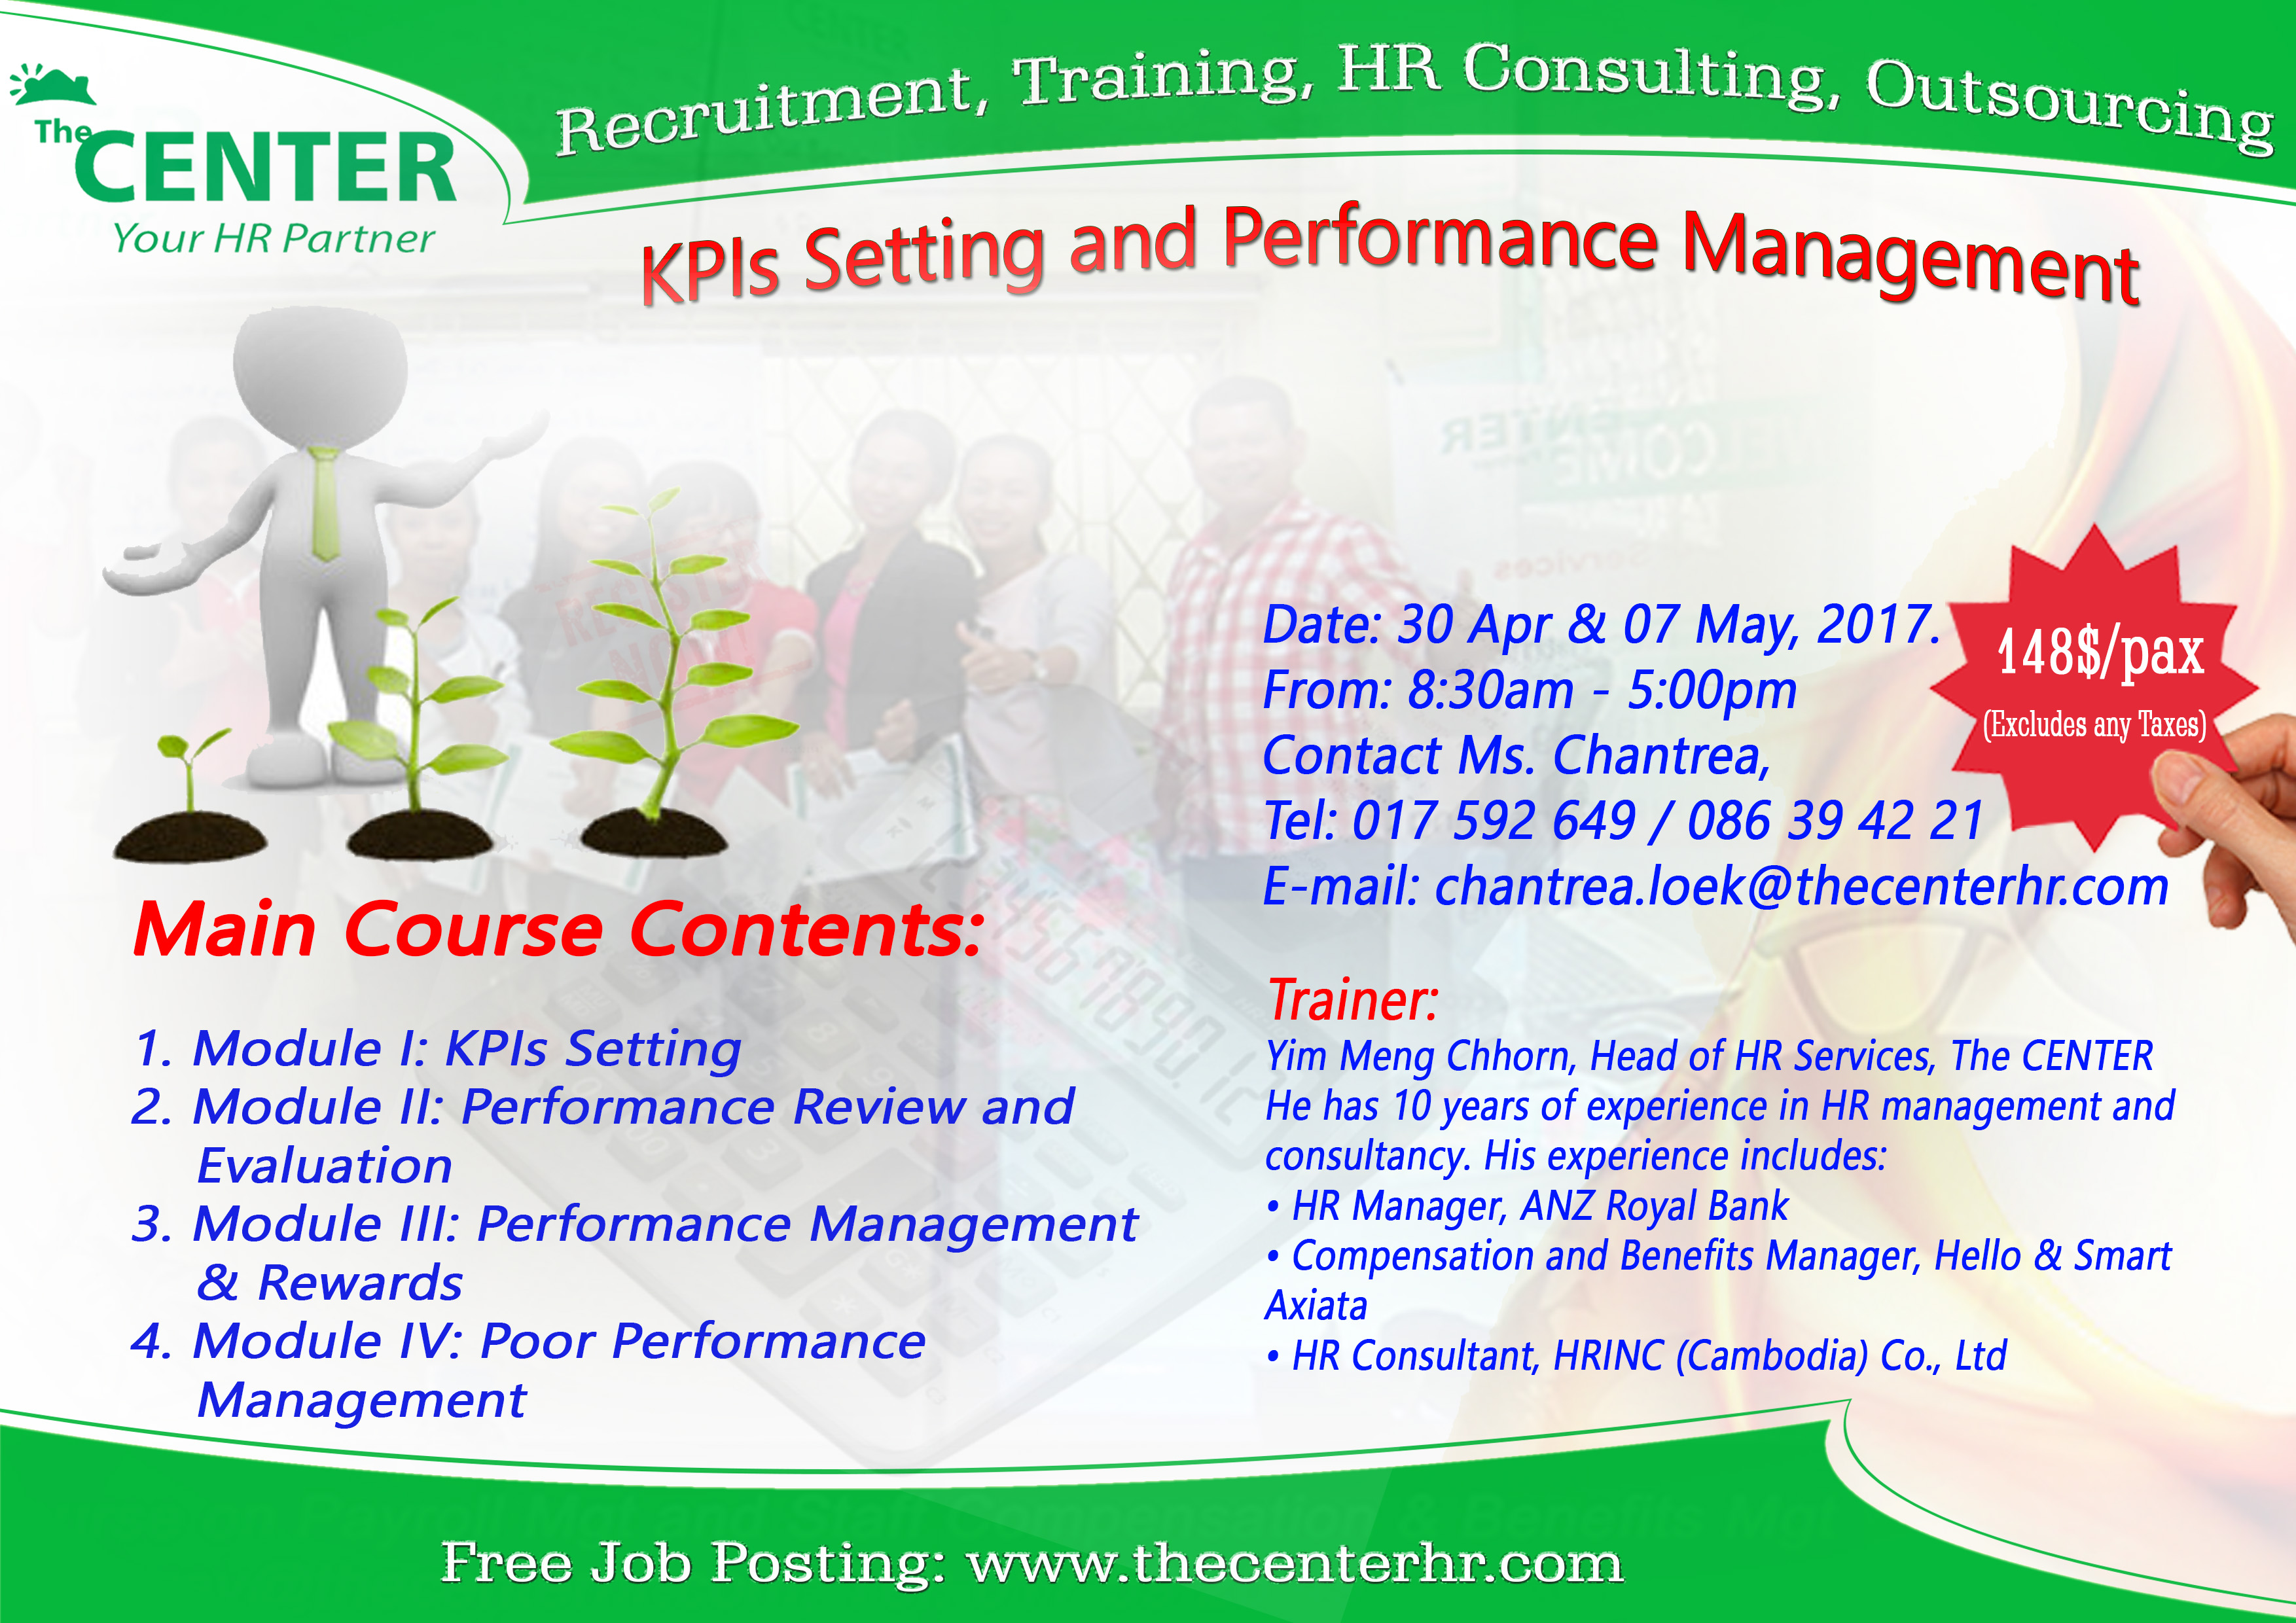 home the center kpis setting and performance management 30 apr 07 2017